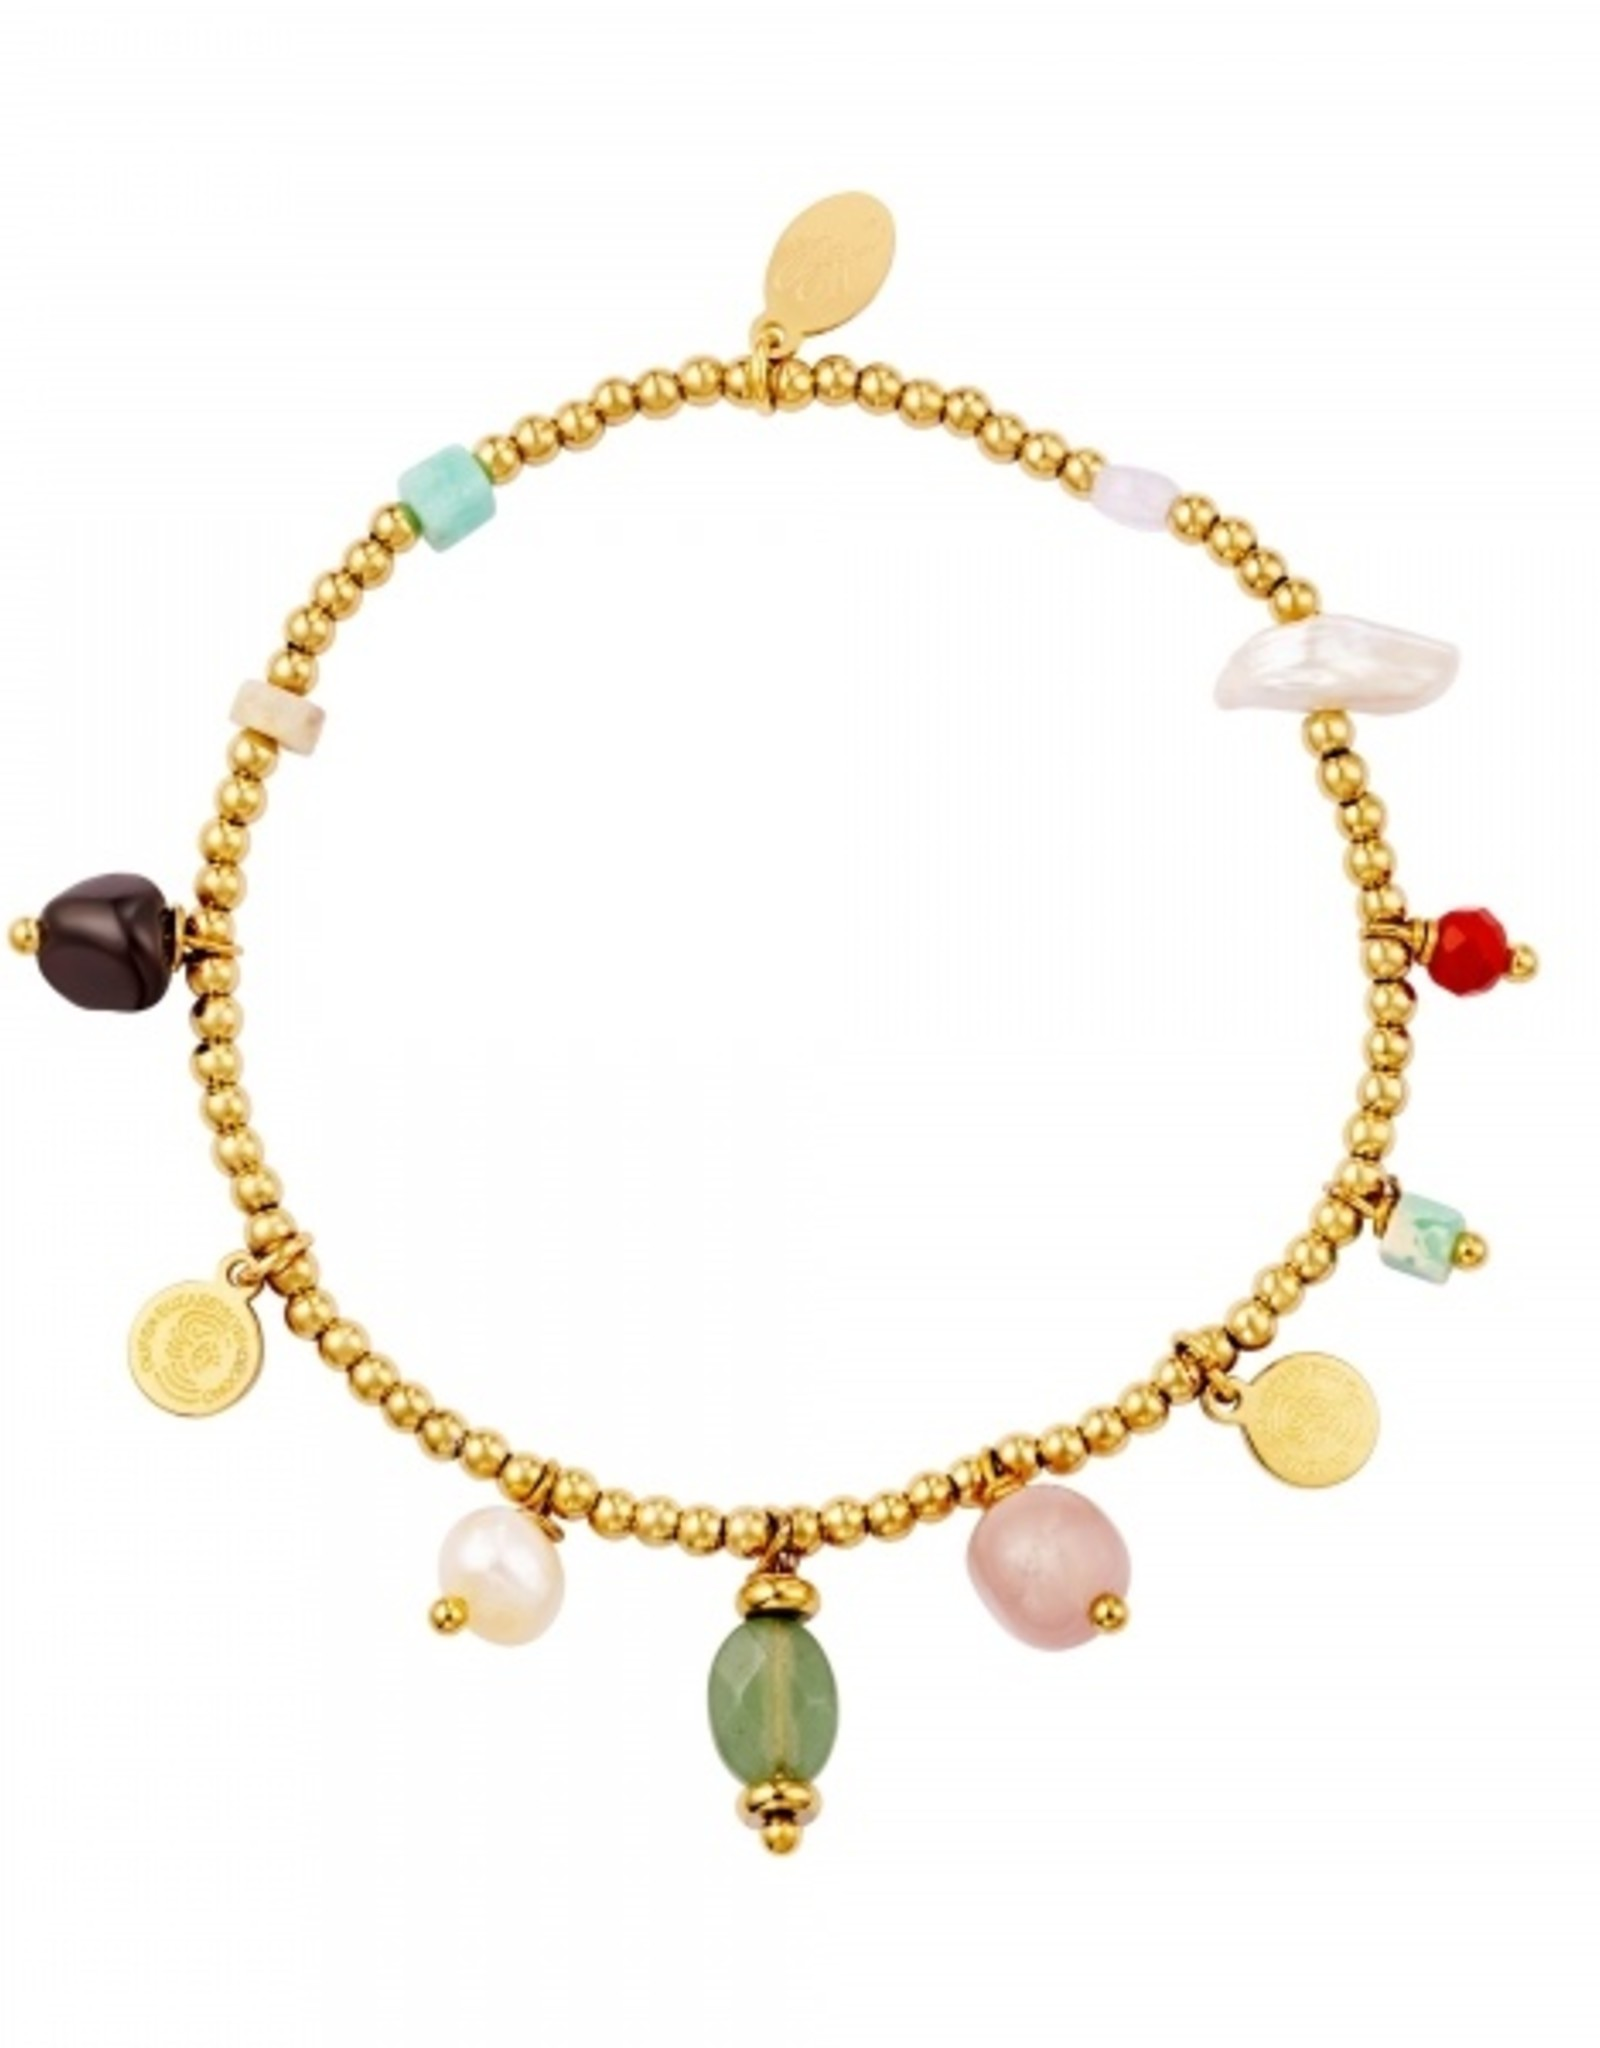 Bracelet with mixed beads and charms